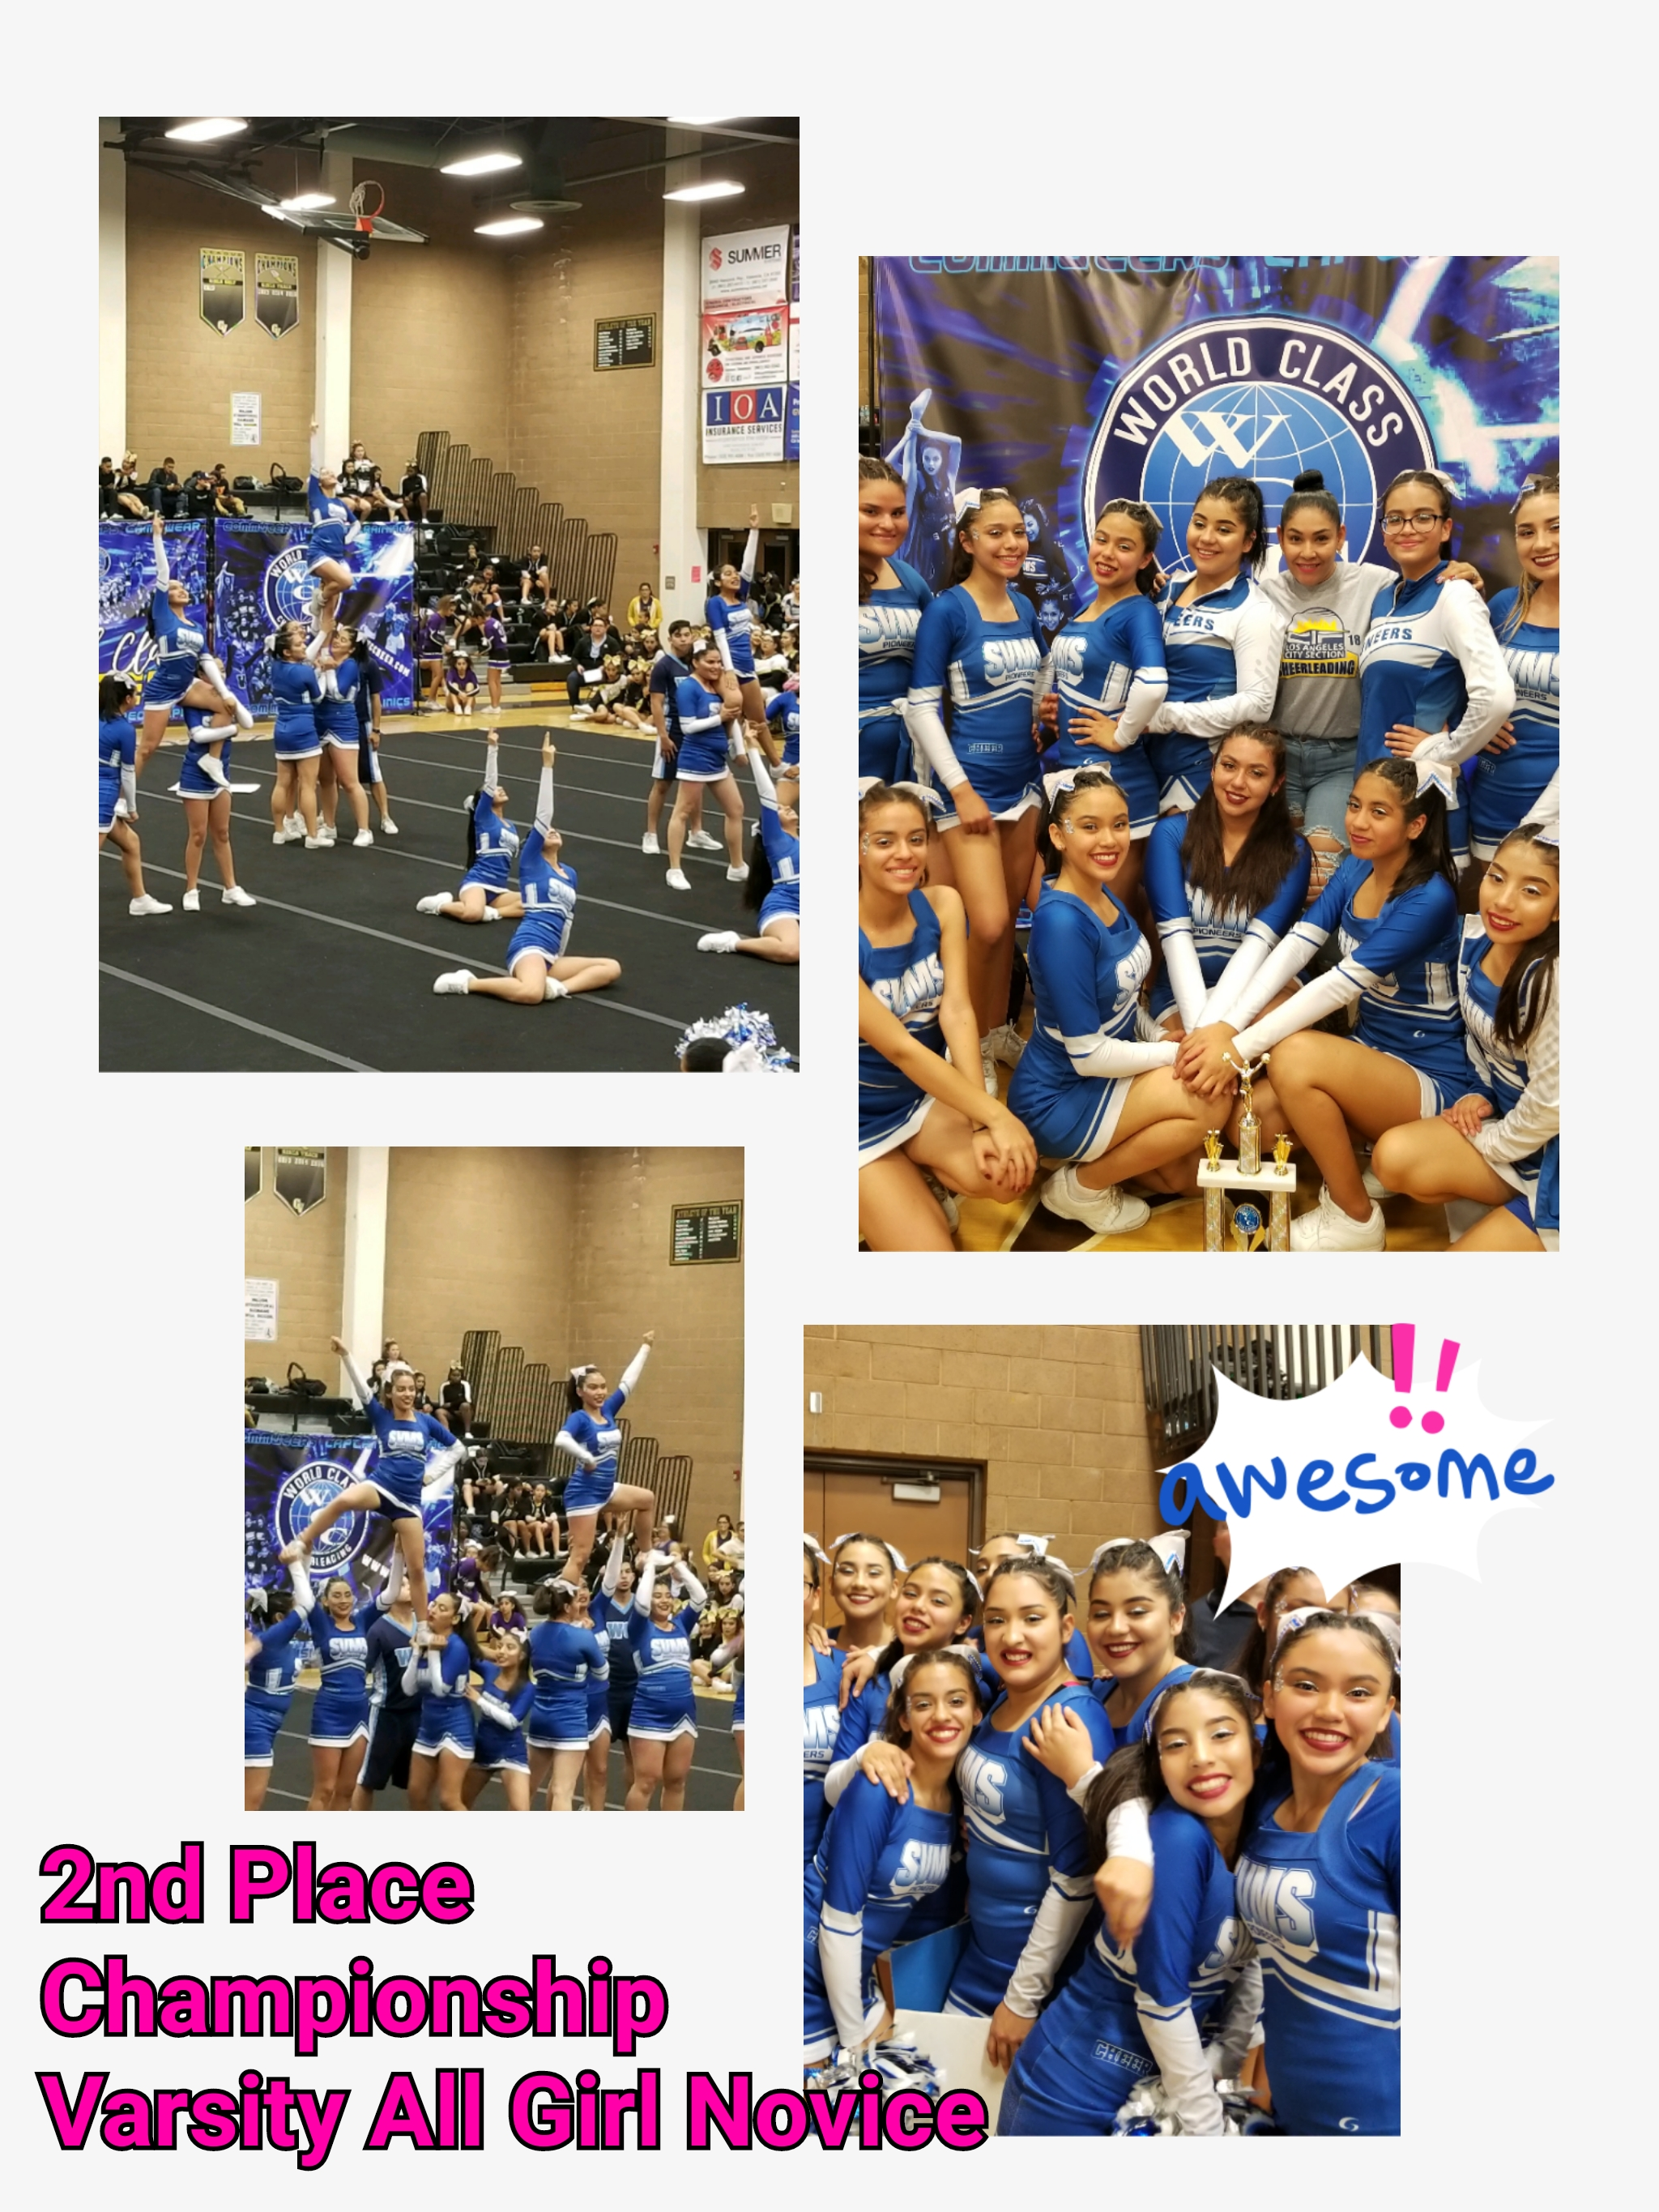 World Class Cheer Championship-3/10/2018